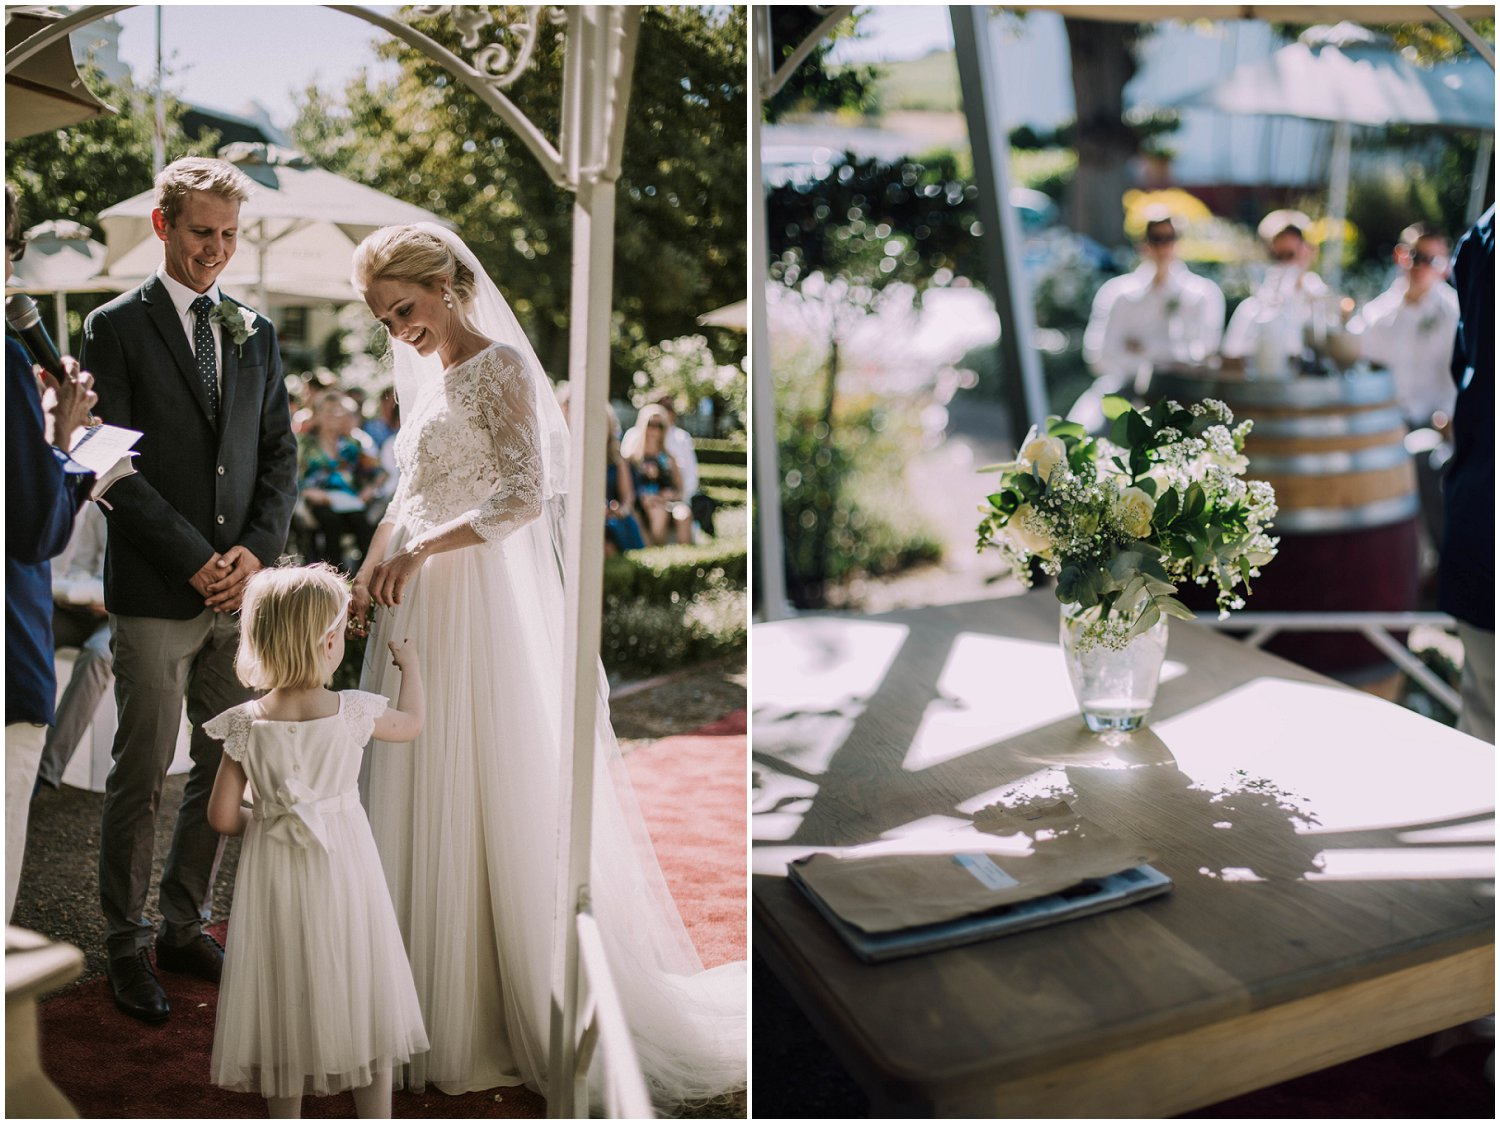 Top Wedding Photographer Cape Town South Africa Artistic Creative Documentary Wedding Photography Rue Kruger_0699.jpg